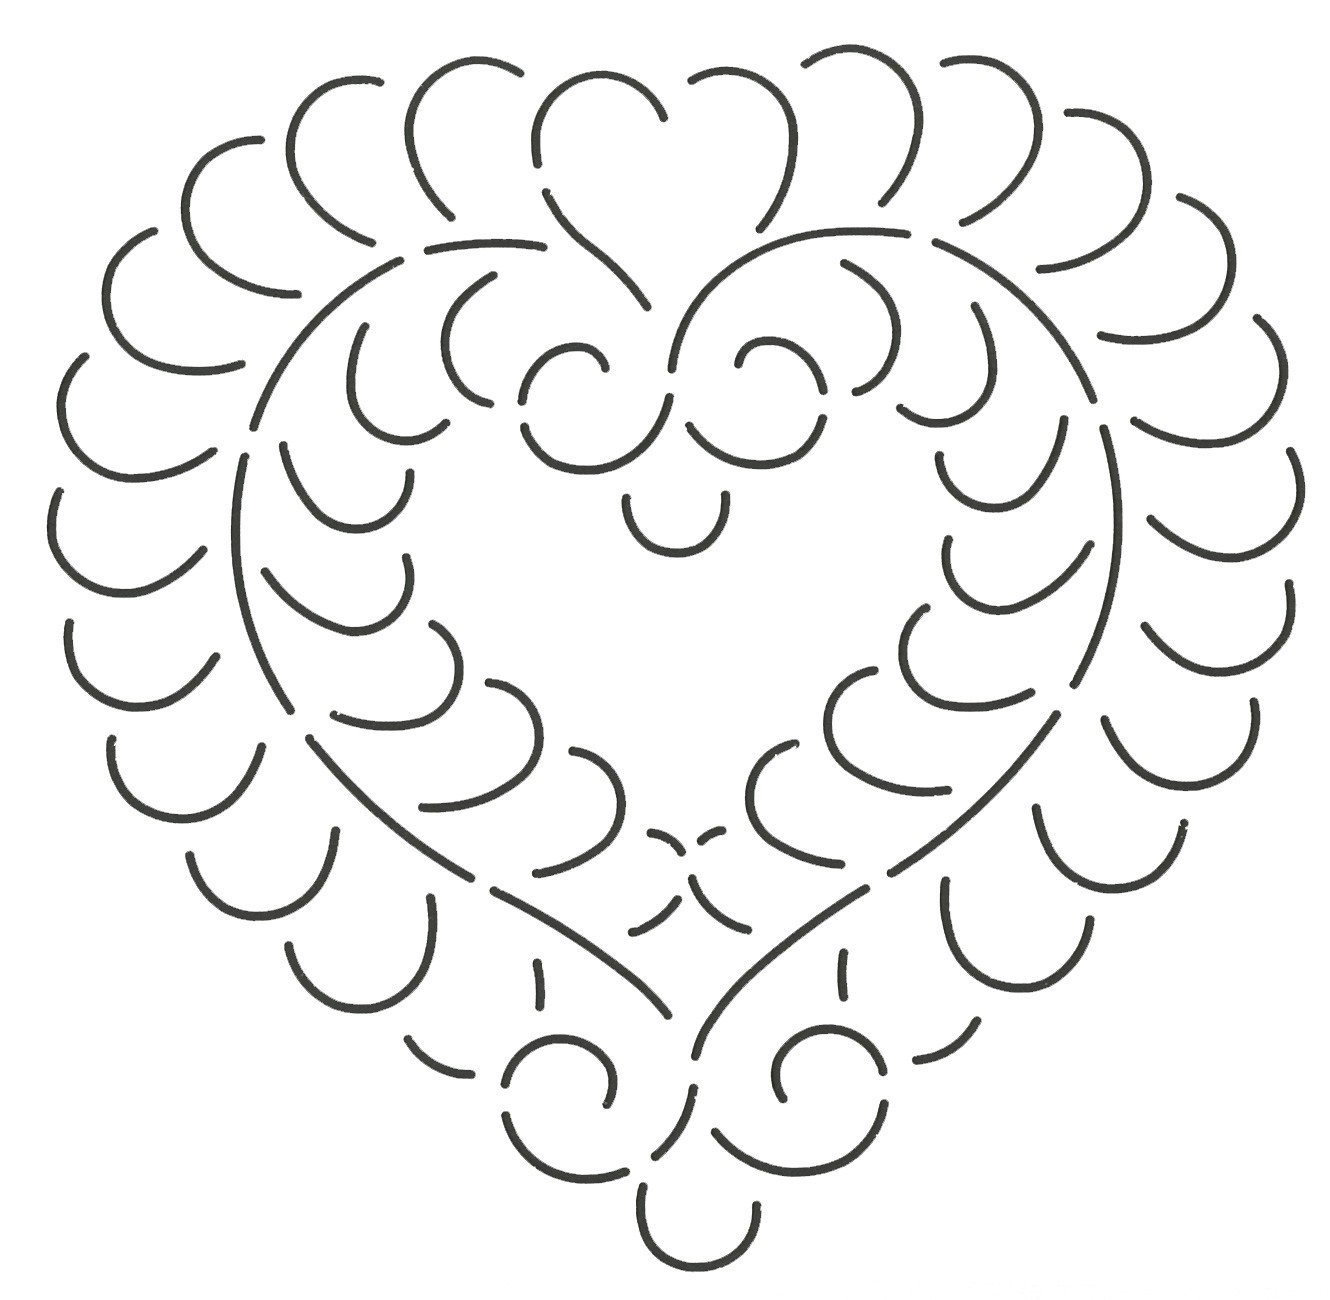 Quilting Creations Feather Heart Quilt Stencil